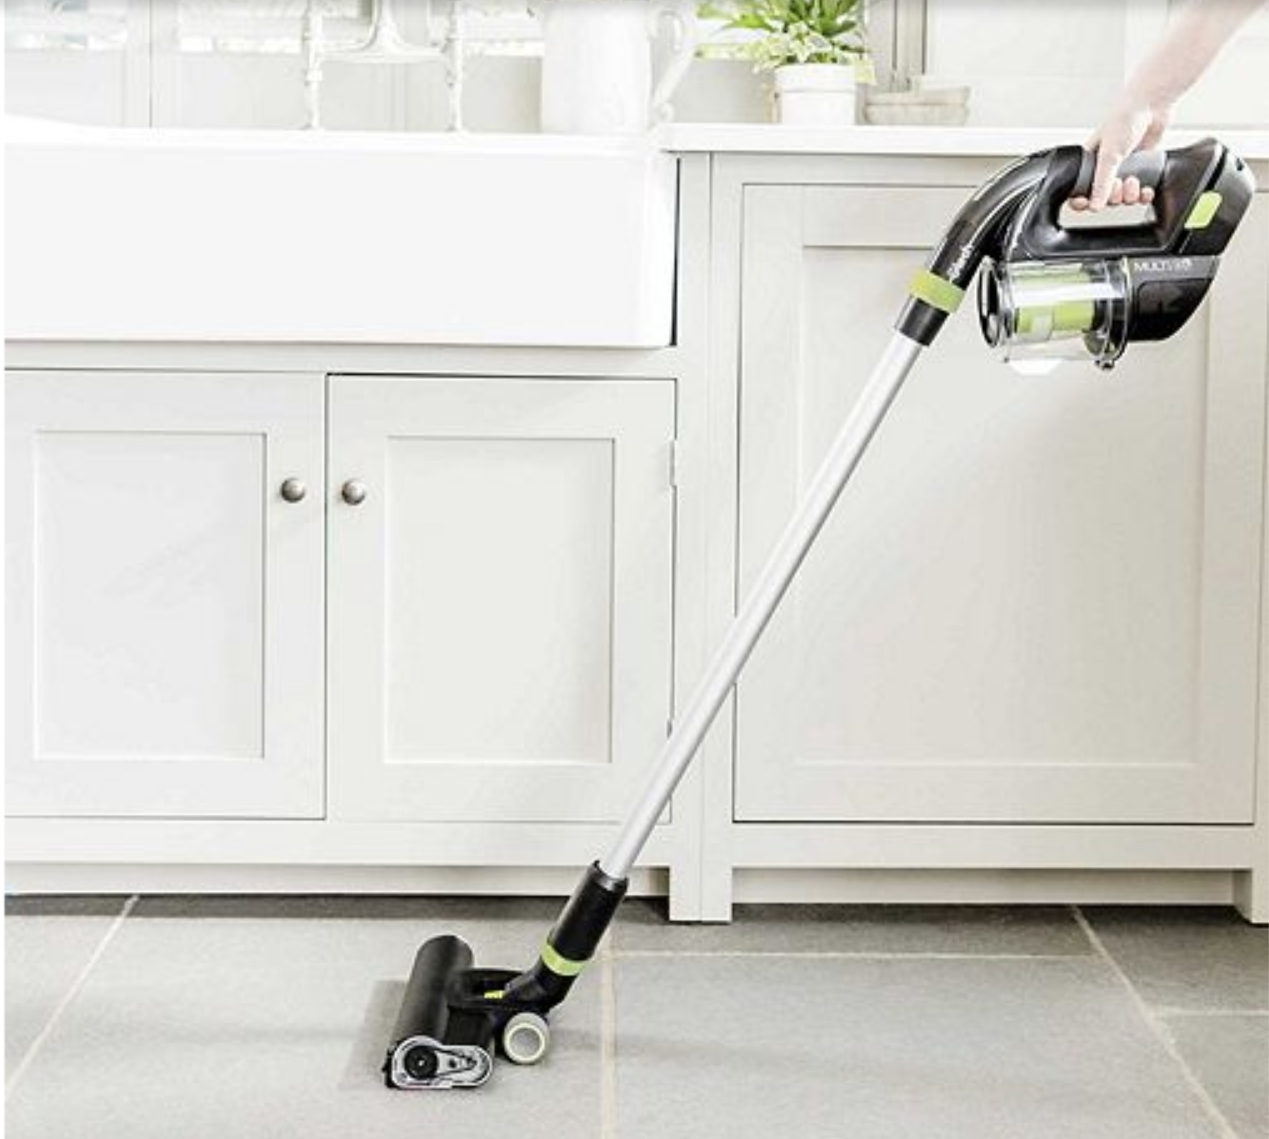 1 000 Extra Clubcard Points With Gtech Vacuum Cleaners But